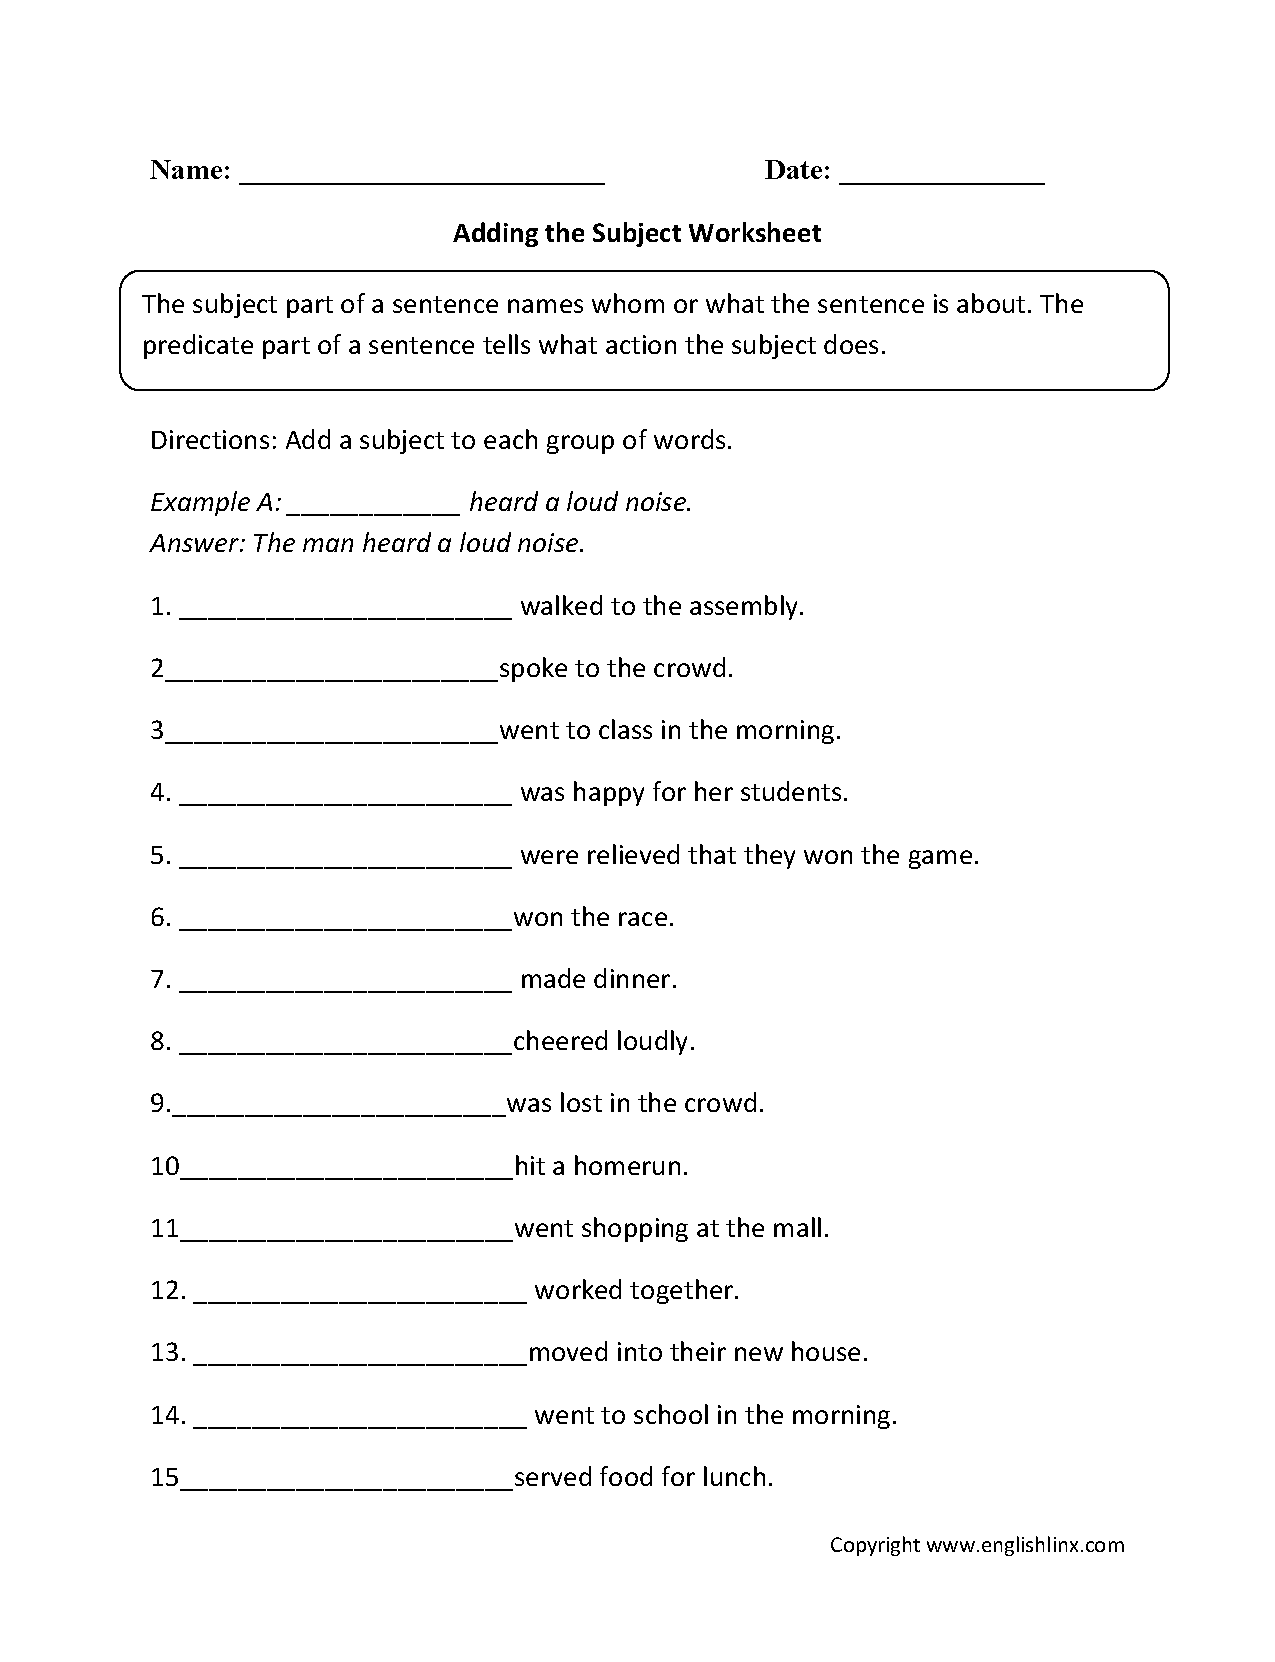 Worksheets 9th Grade English Worksheets englishlinx com subject and predicate worksheets adding a worksheet